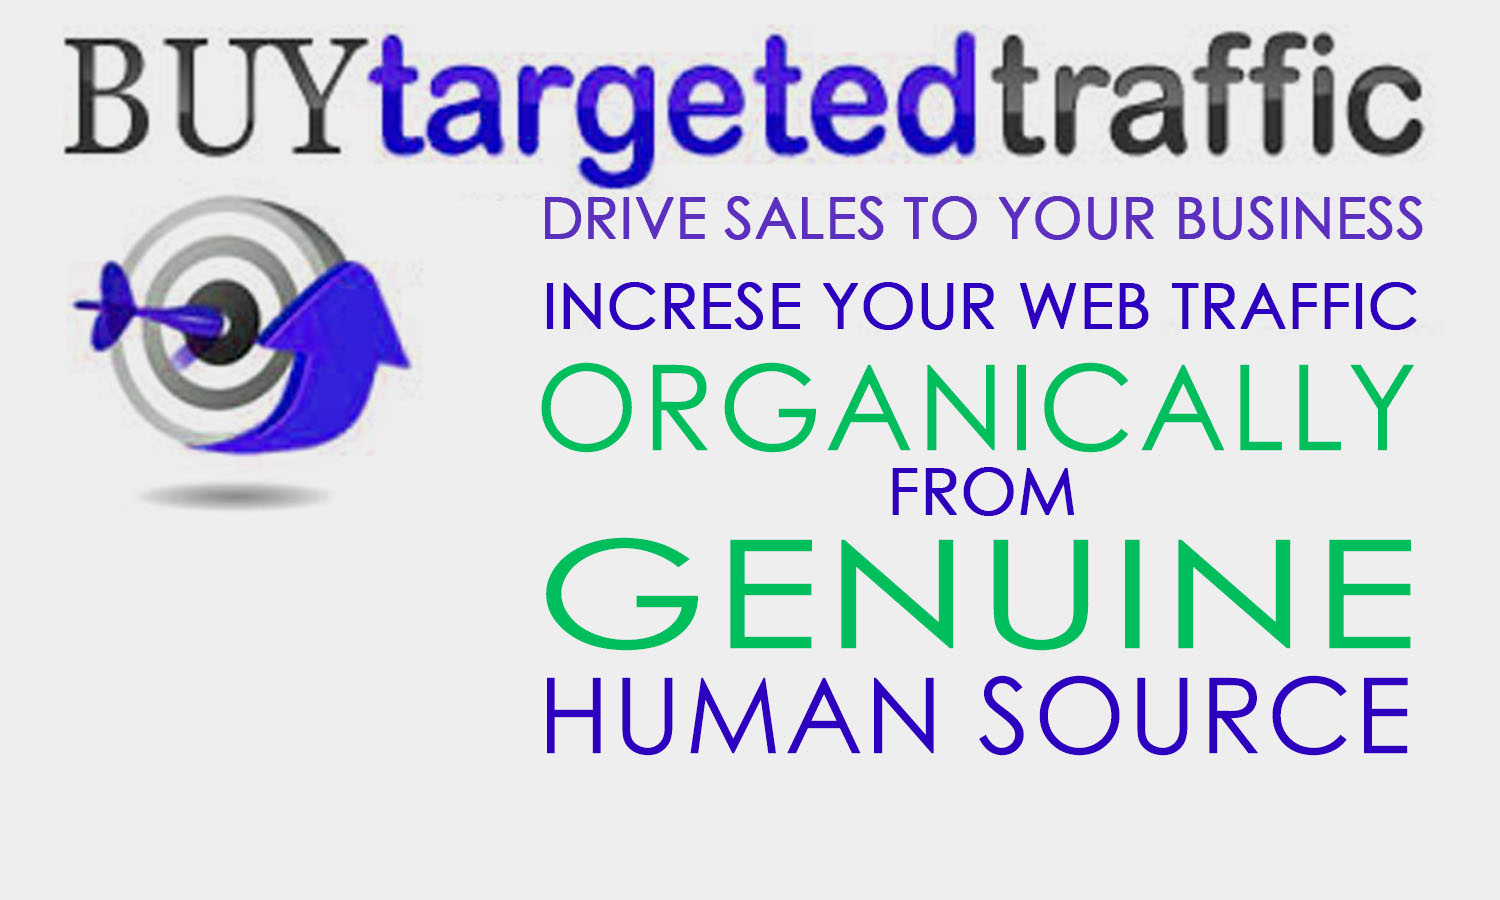 Drive UNLIMITED Real Organic Targeted Traffic, low bounce rate & quality visitors